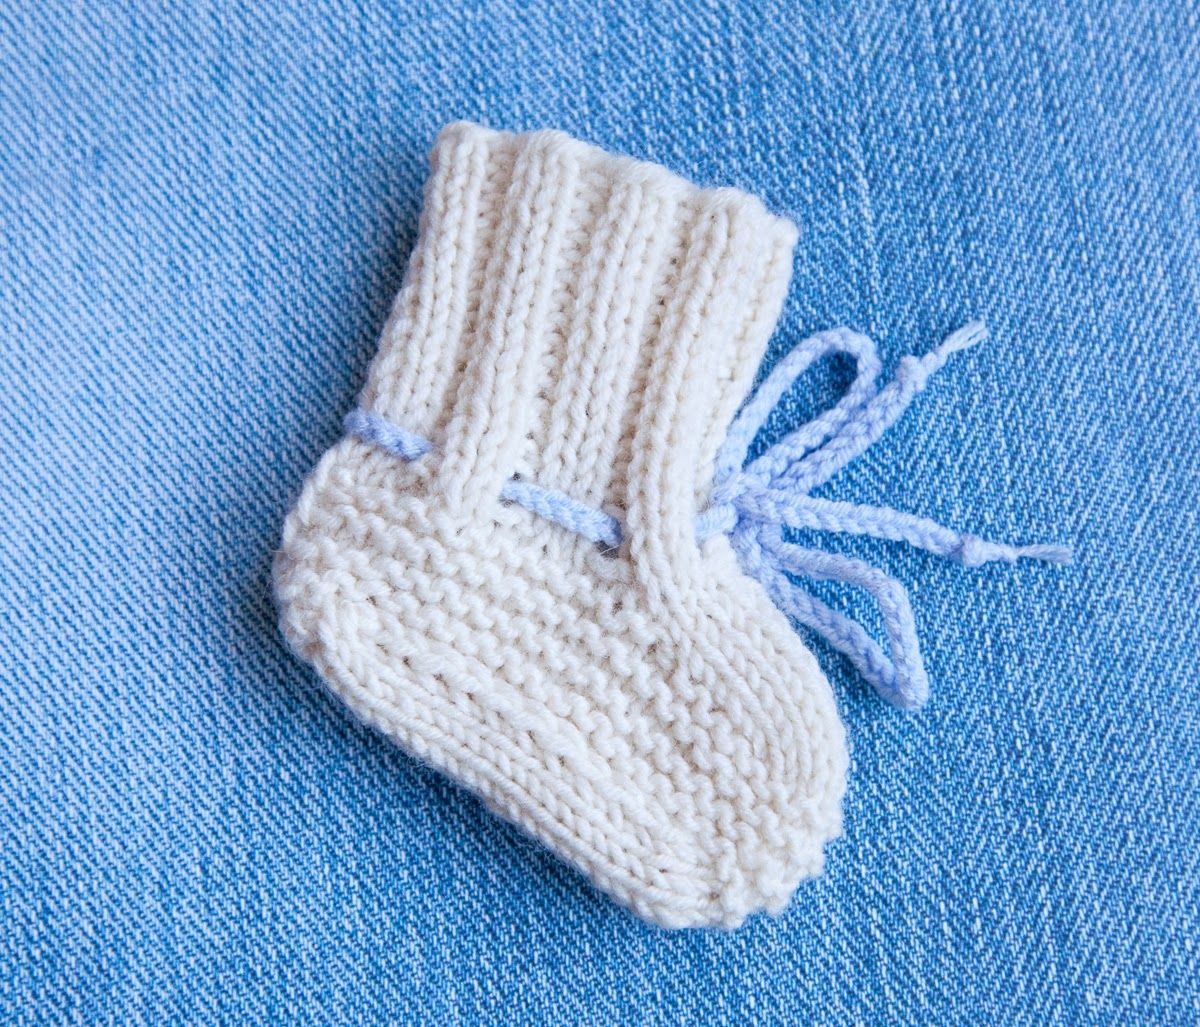 crochet step by step instructions